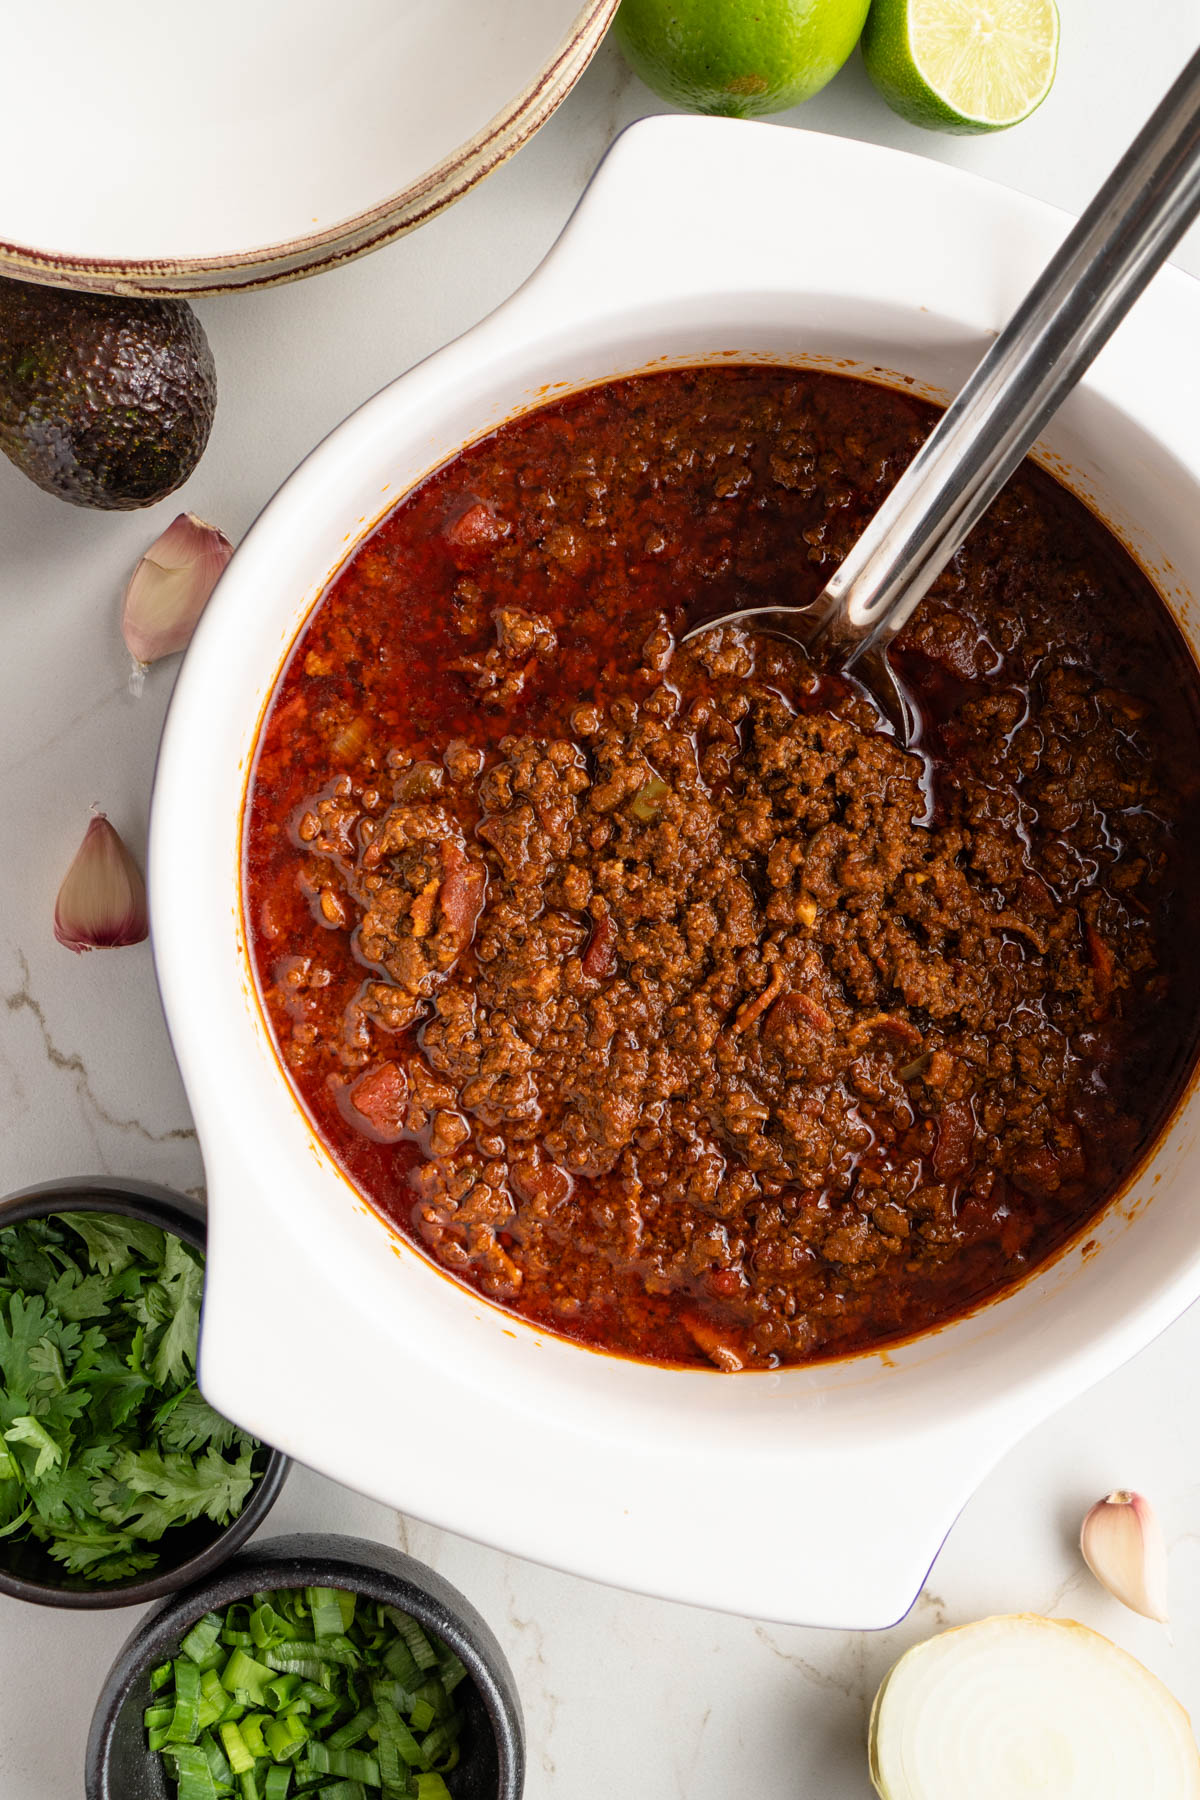 Full pot of chili with serving spoon.